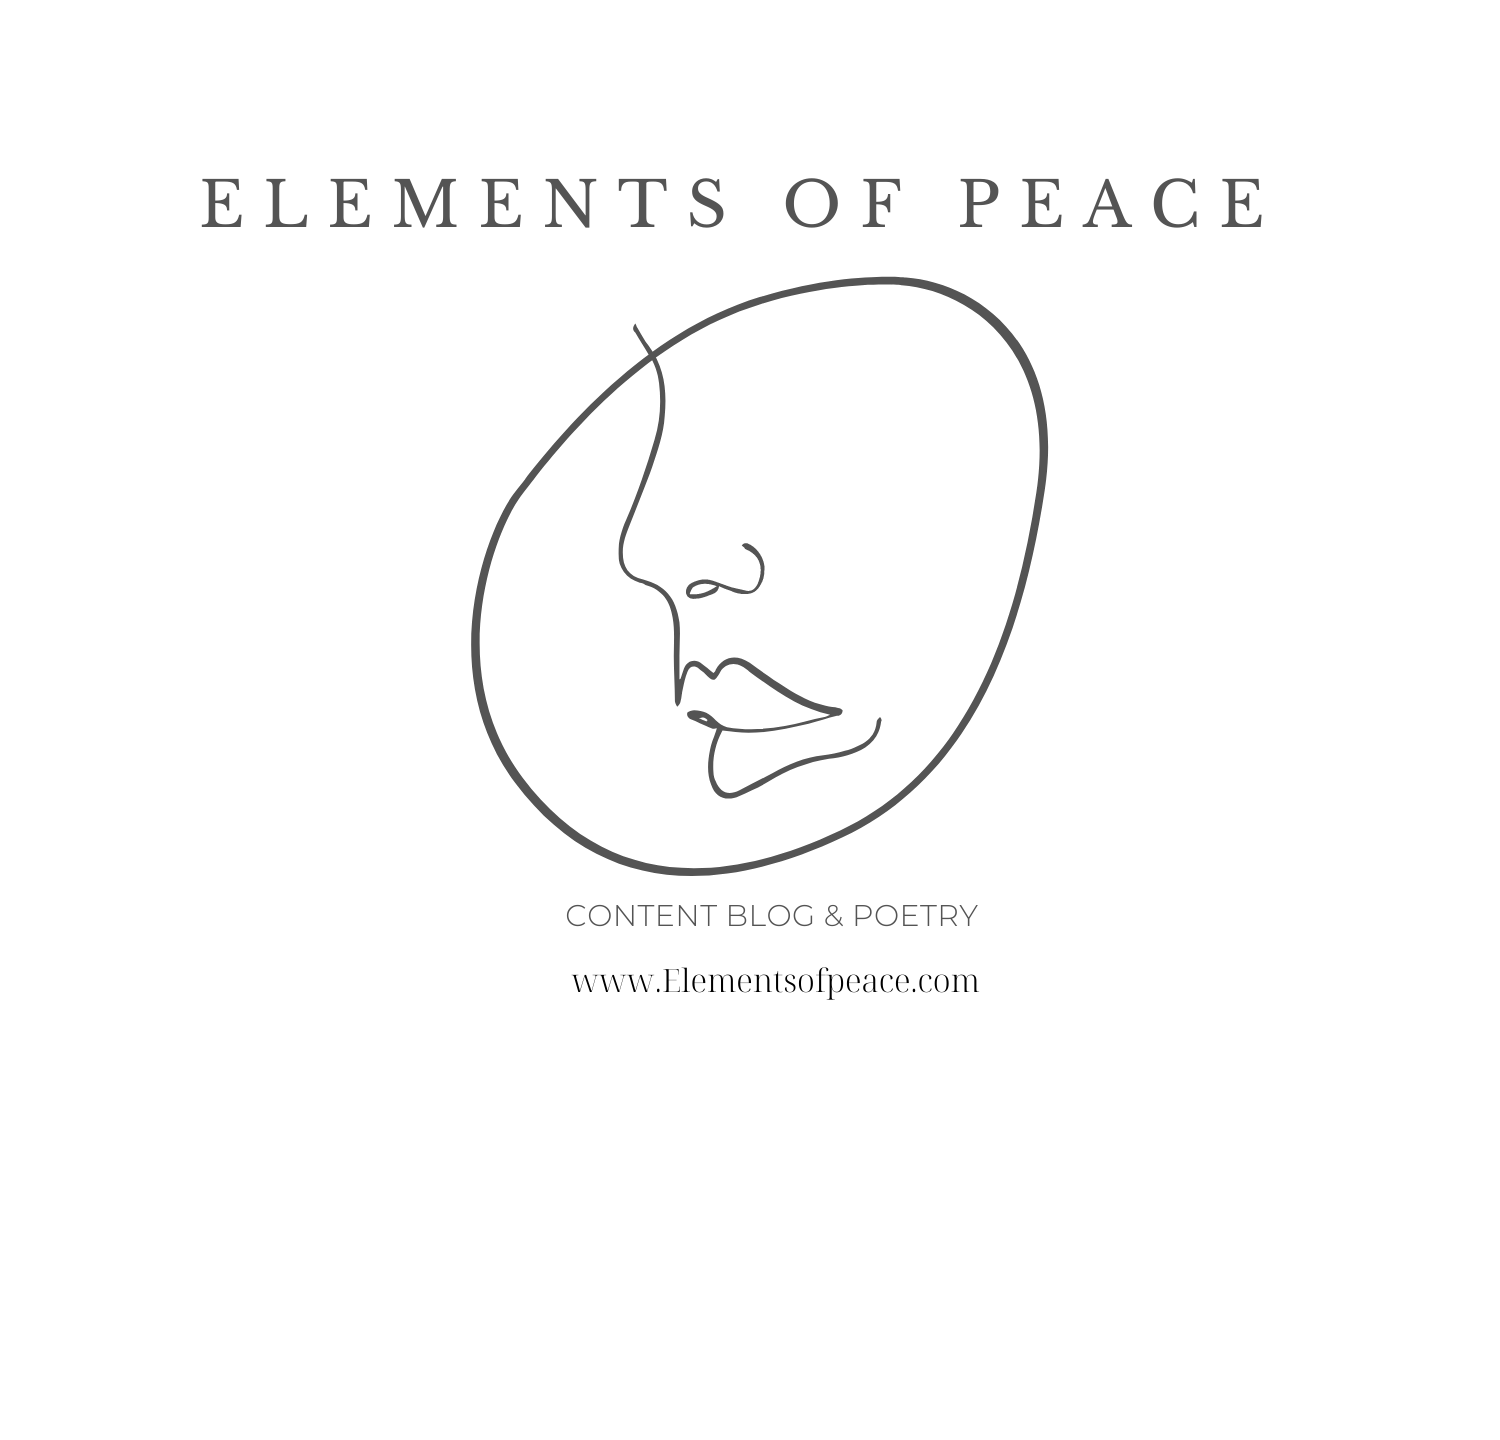 Elements of Peace